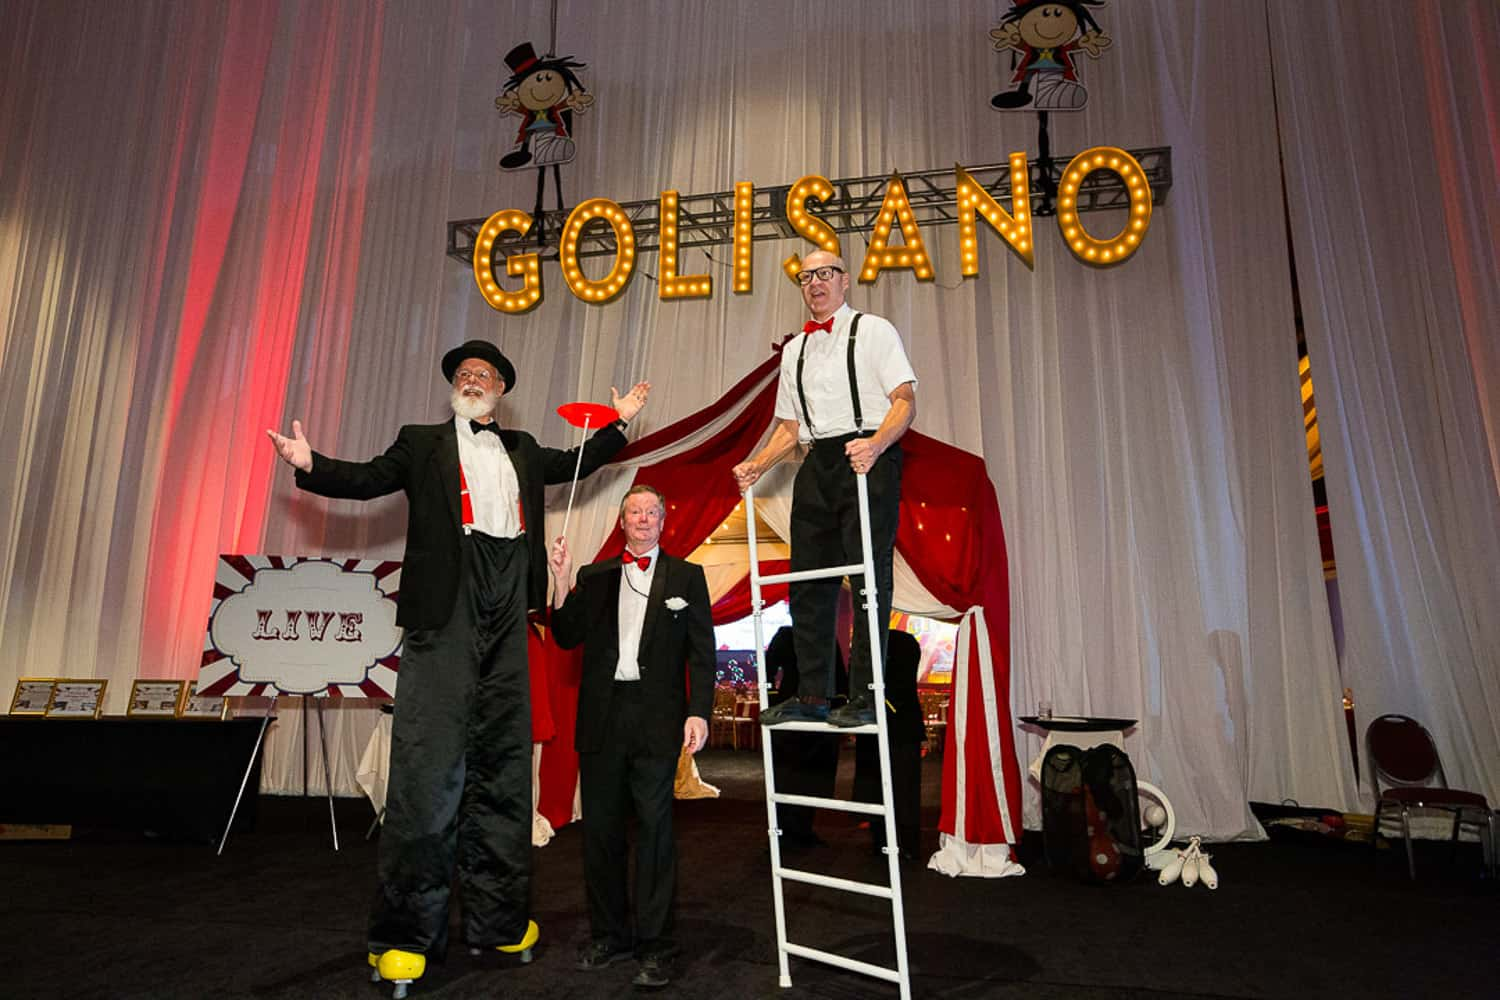 Event Photographer for performers at Golisano Children's Hospital Gala.